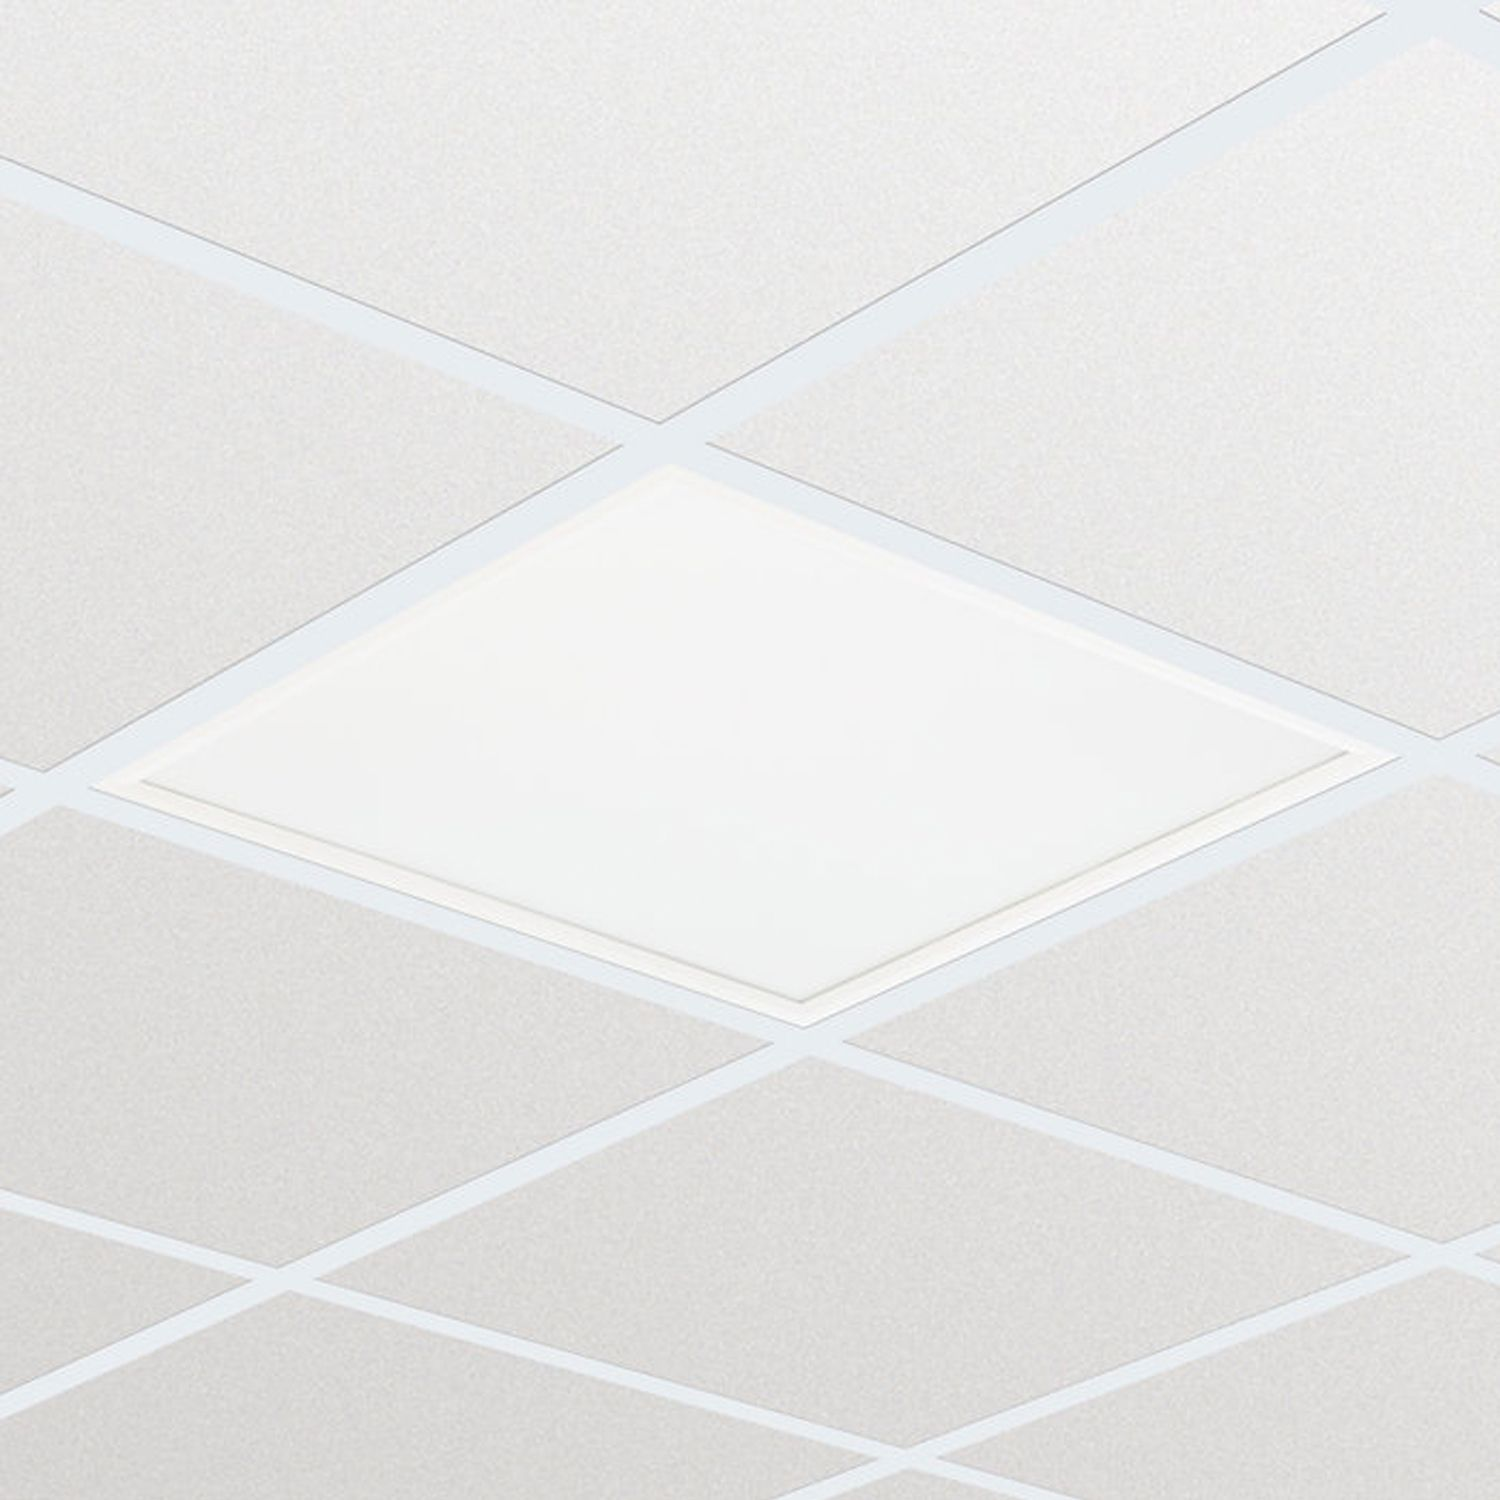 Philips LED Panel CoreLine RC132V G4 60x60cm 4000K 3600lm UGR <25 | Replacer for 4x18W